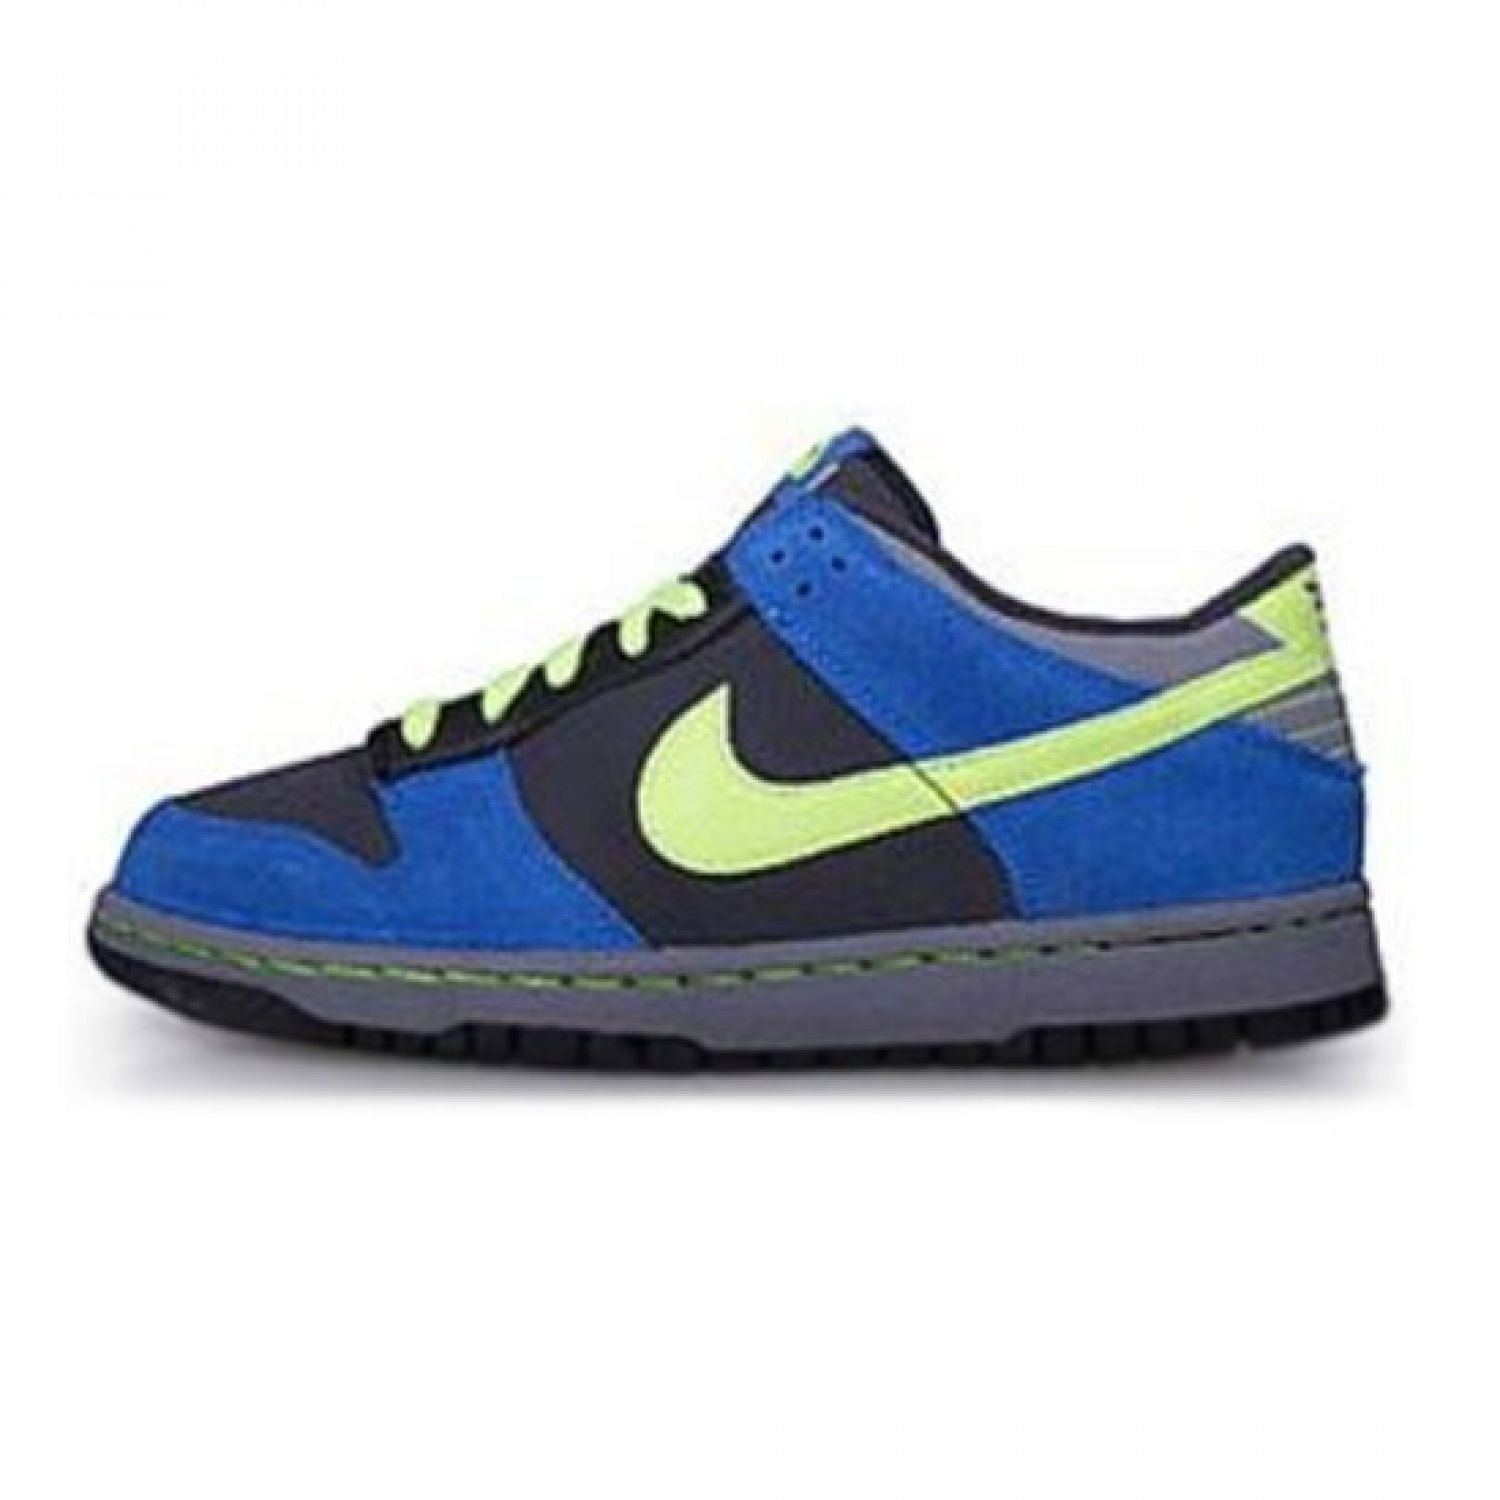 new style ab88b 79625 310569-008 NIKE DUNK LOW GS GRADE SCHOOL SHOES BLKNTRL GRY VRSY RYLSPRT RD  Anthracite  Vlt - Bl Spphr - Cl Gry 7 M US Big Kid Buy Online at Low  Prices in ...